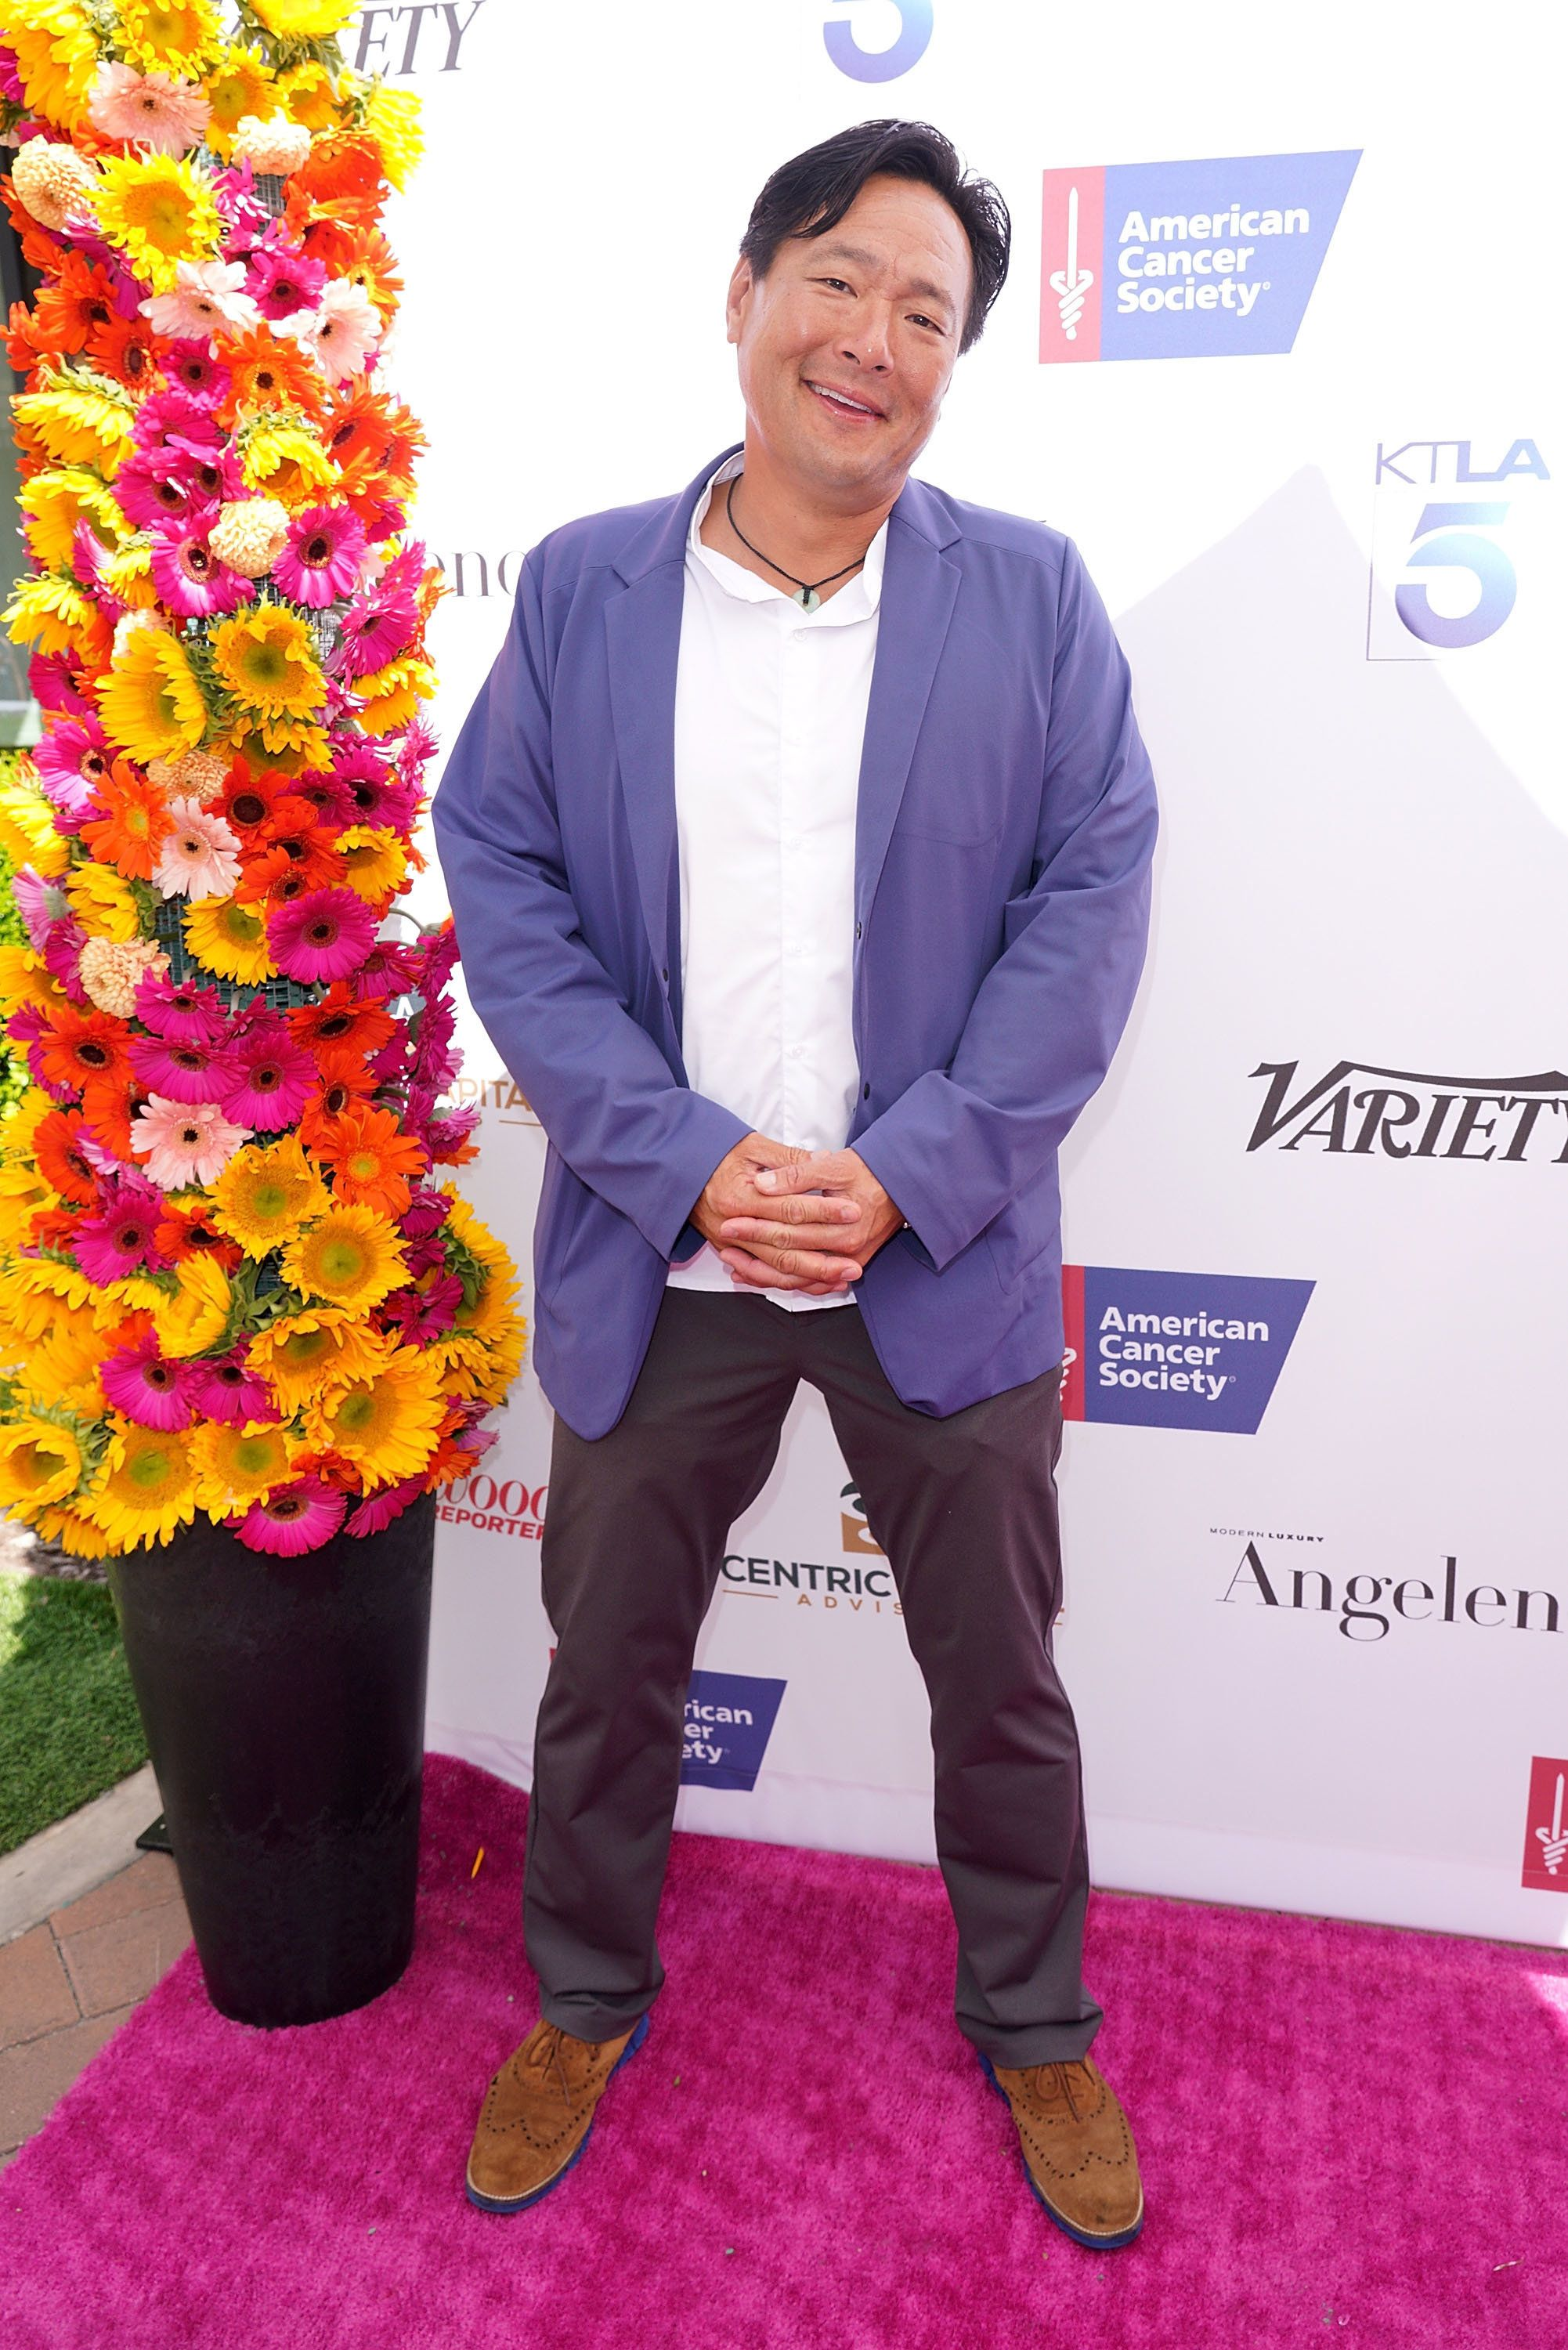 CULVER CITY, CA - JULY 15:  Chef Ming Tsai, 2018 Impact Award Honoree attends American Cancer Society's California Spirit 33 Gourmet Garden Party at Sony Pictures Studios on July 15, 2018 in Culver City, California.  (Photo by JC Olivera/Getty Images)